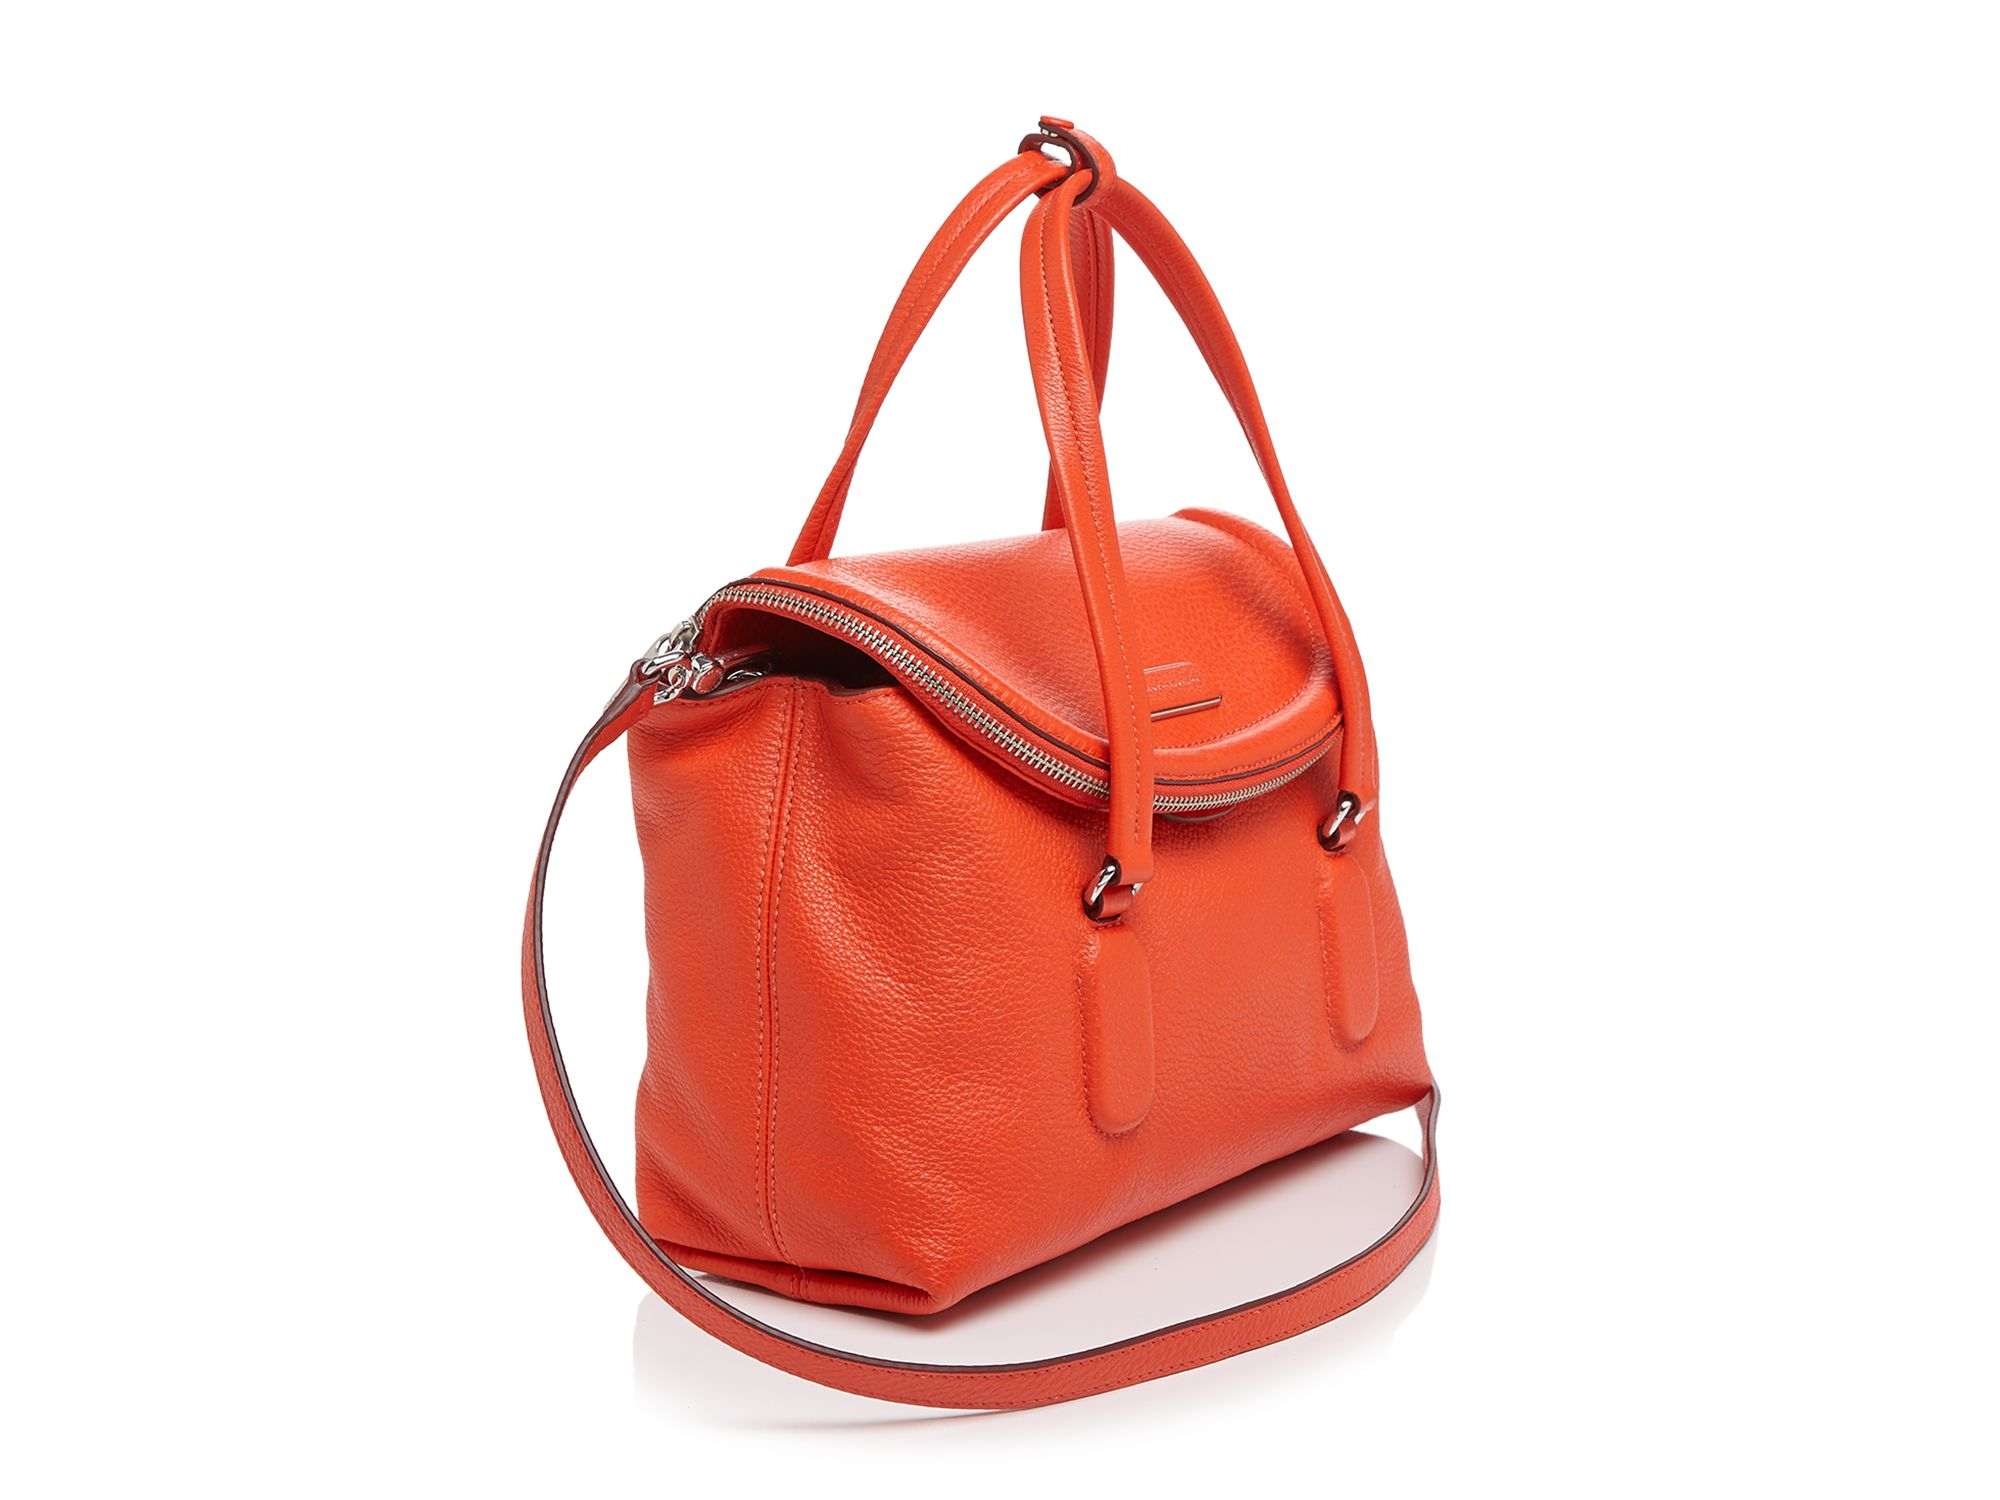 9383d6b0f2 Marc By Marc Jacobs Satchel - Silicone Valley Small in Orange - Lyst